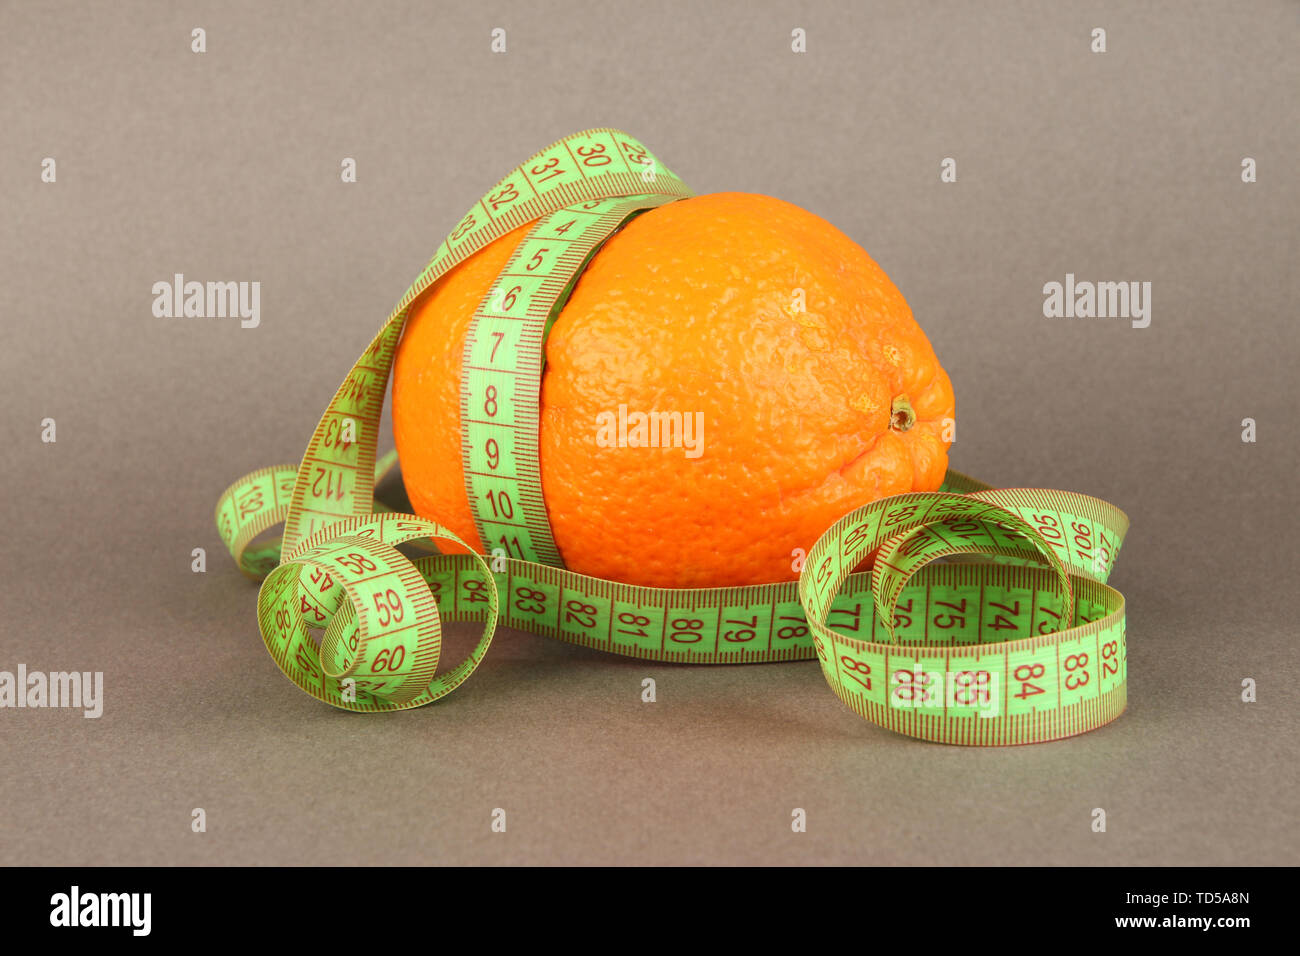 Orange with measuring tape, on color background - Stock Image